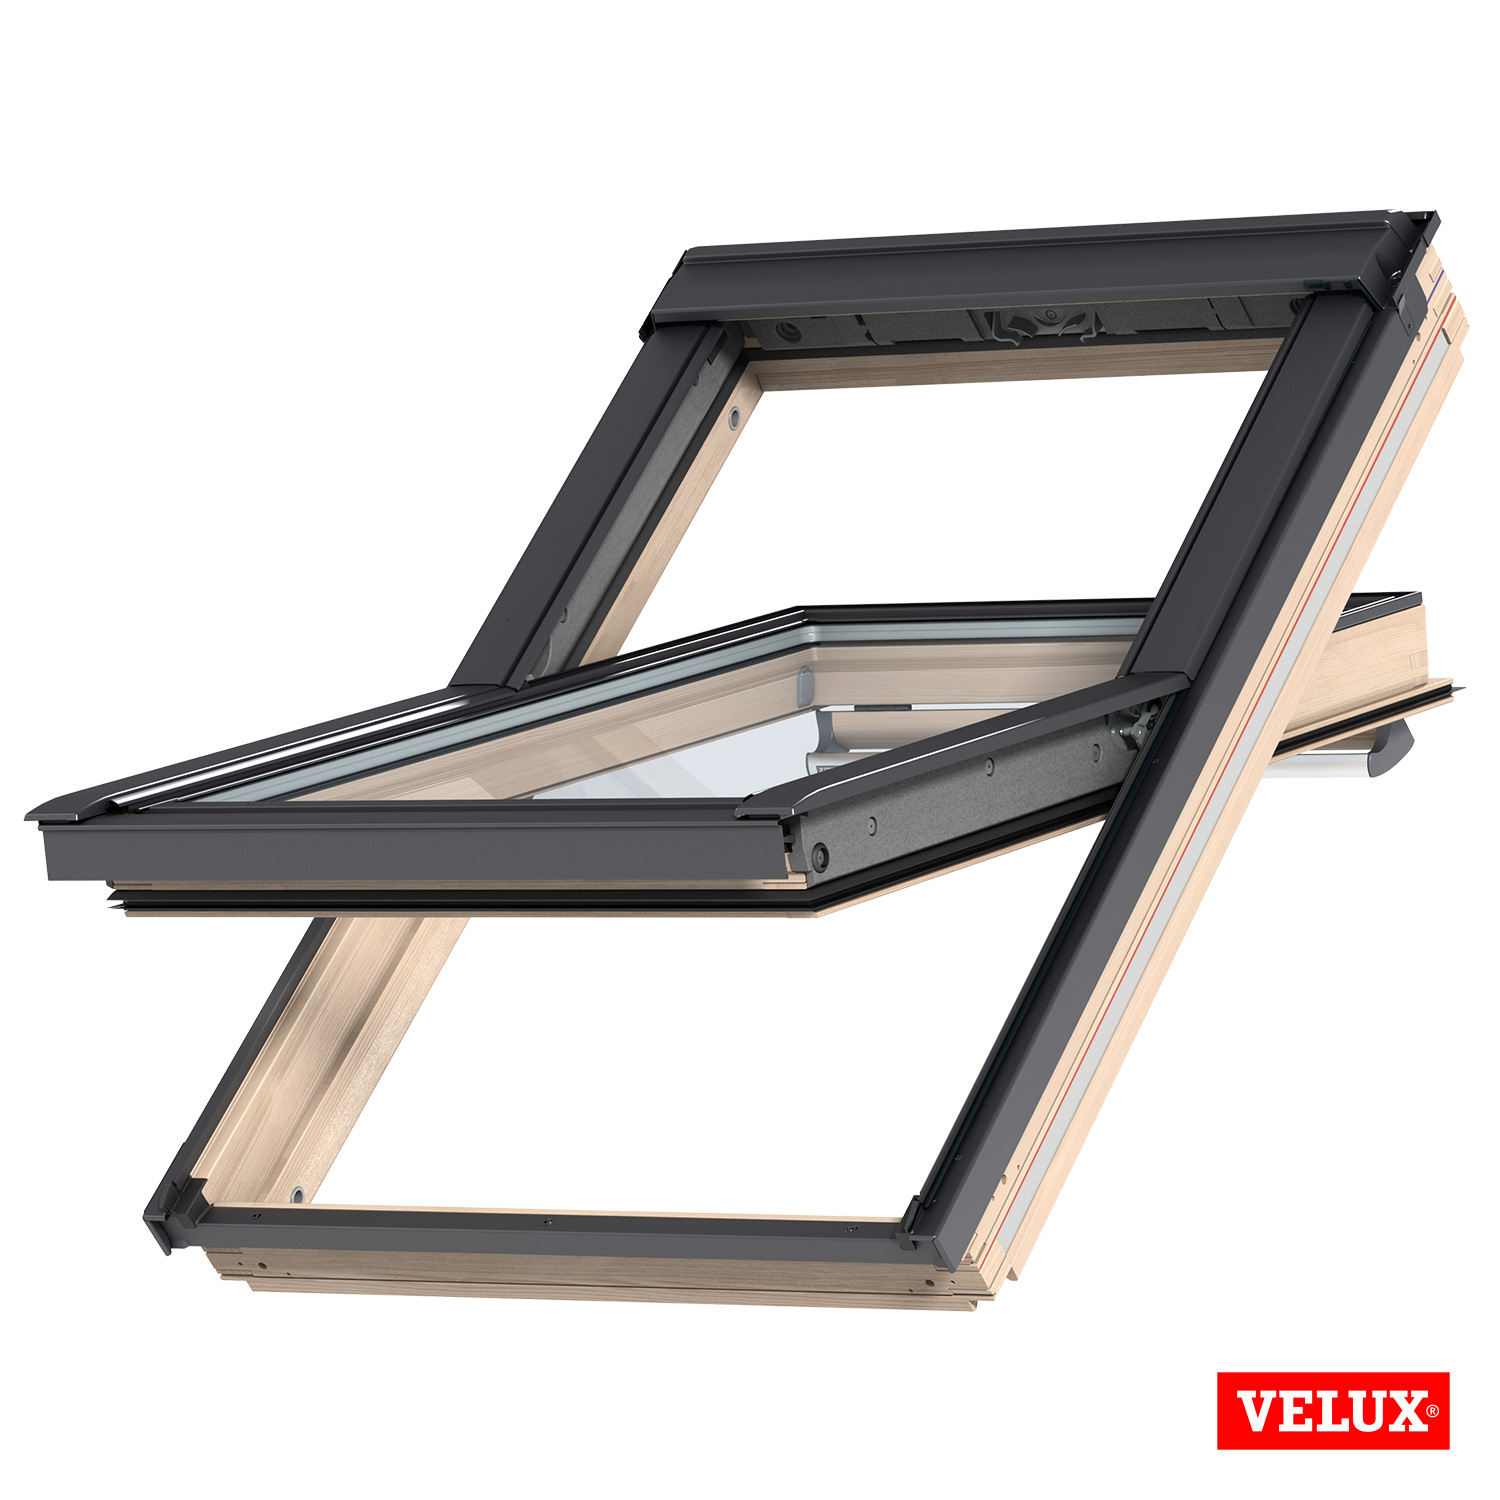 Velux Roof Window Ggl 3070 Pine Centre Pivot With Flashing Kit Ebay